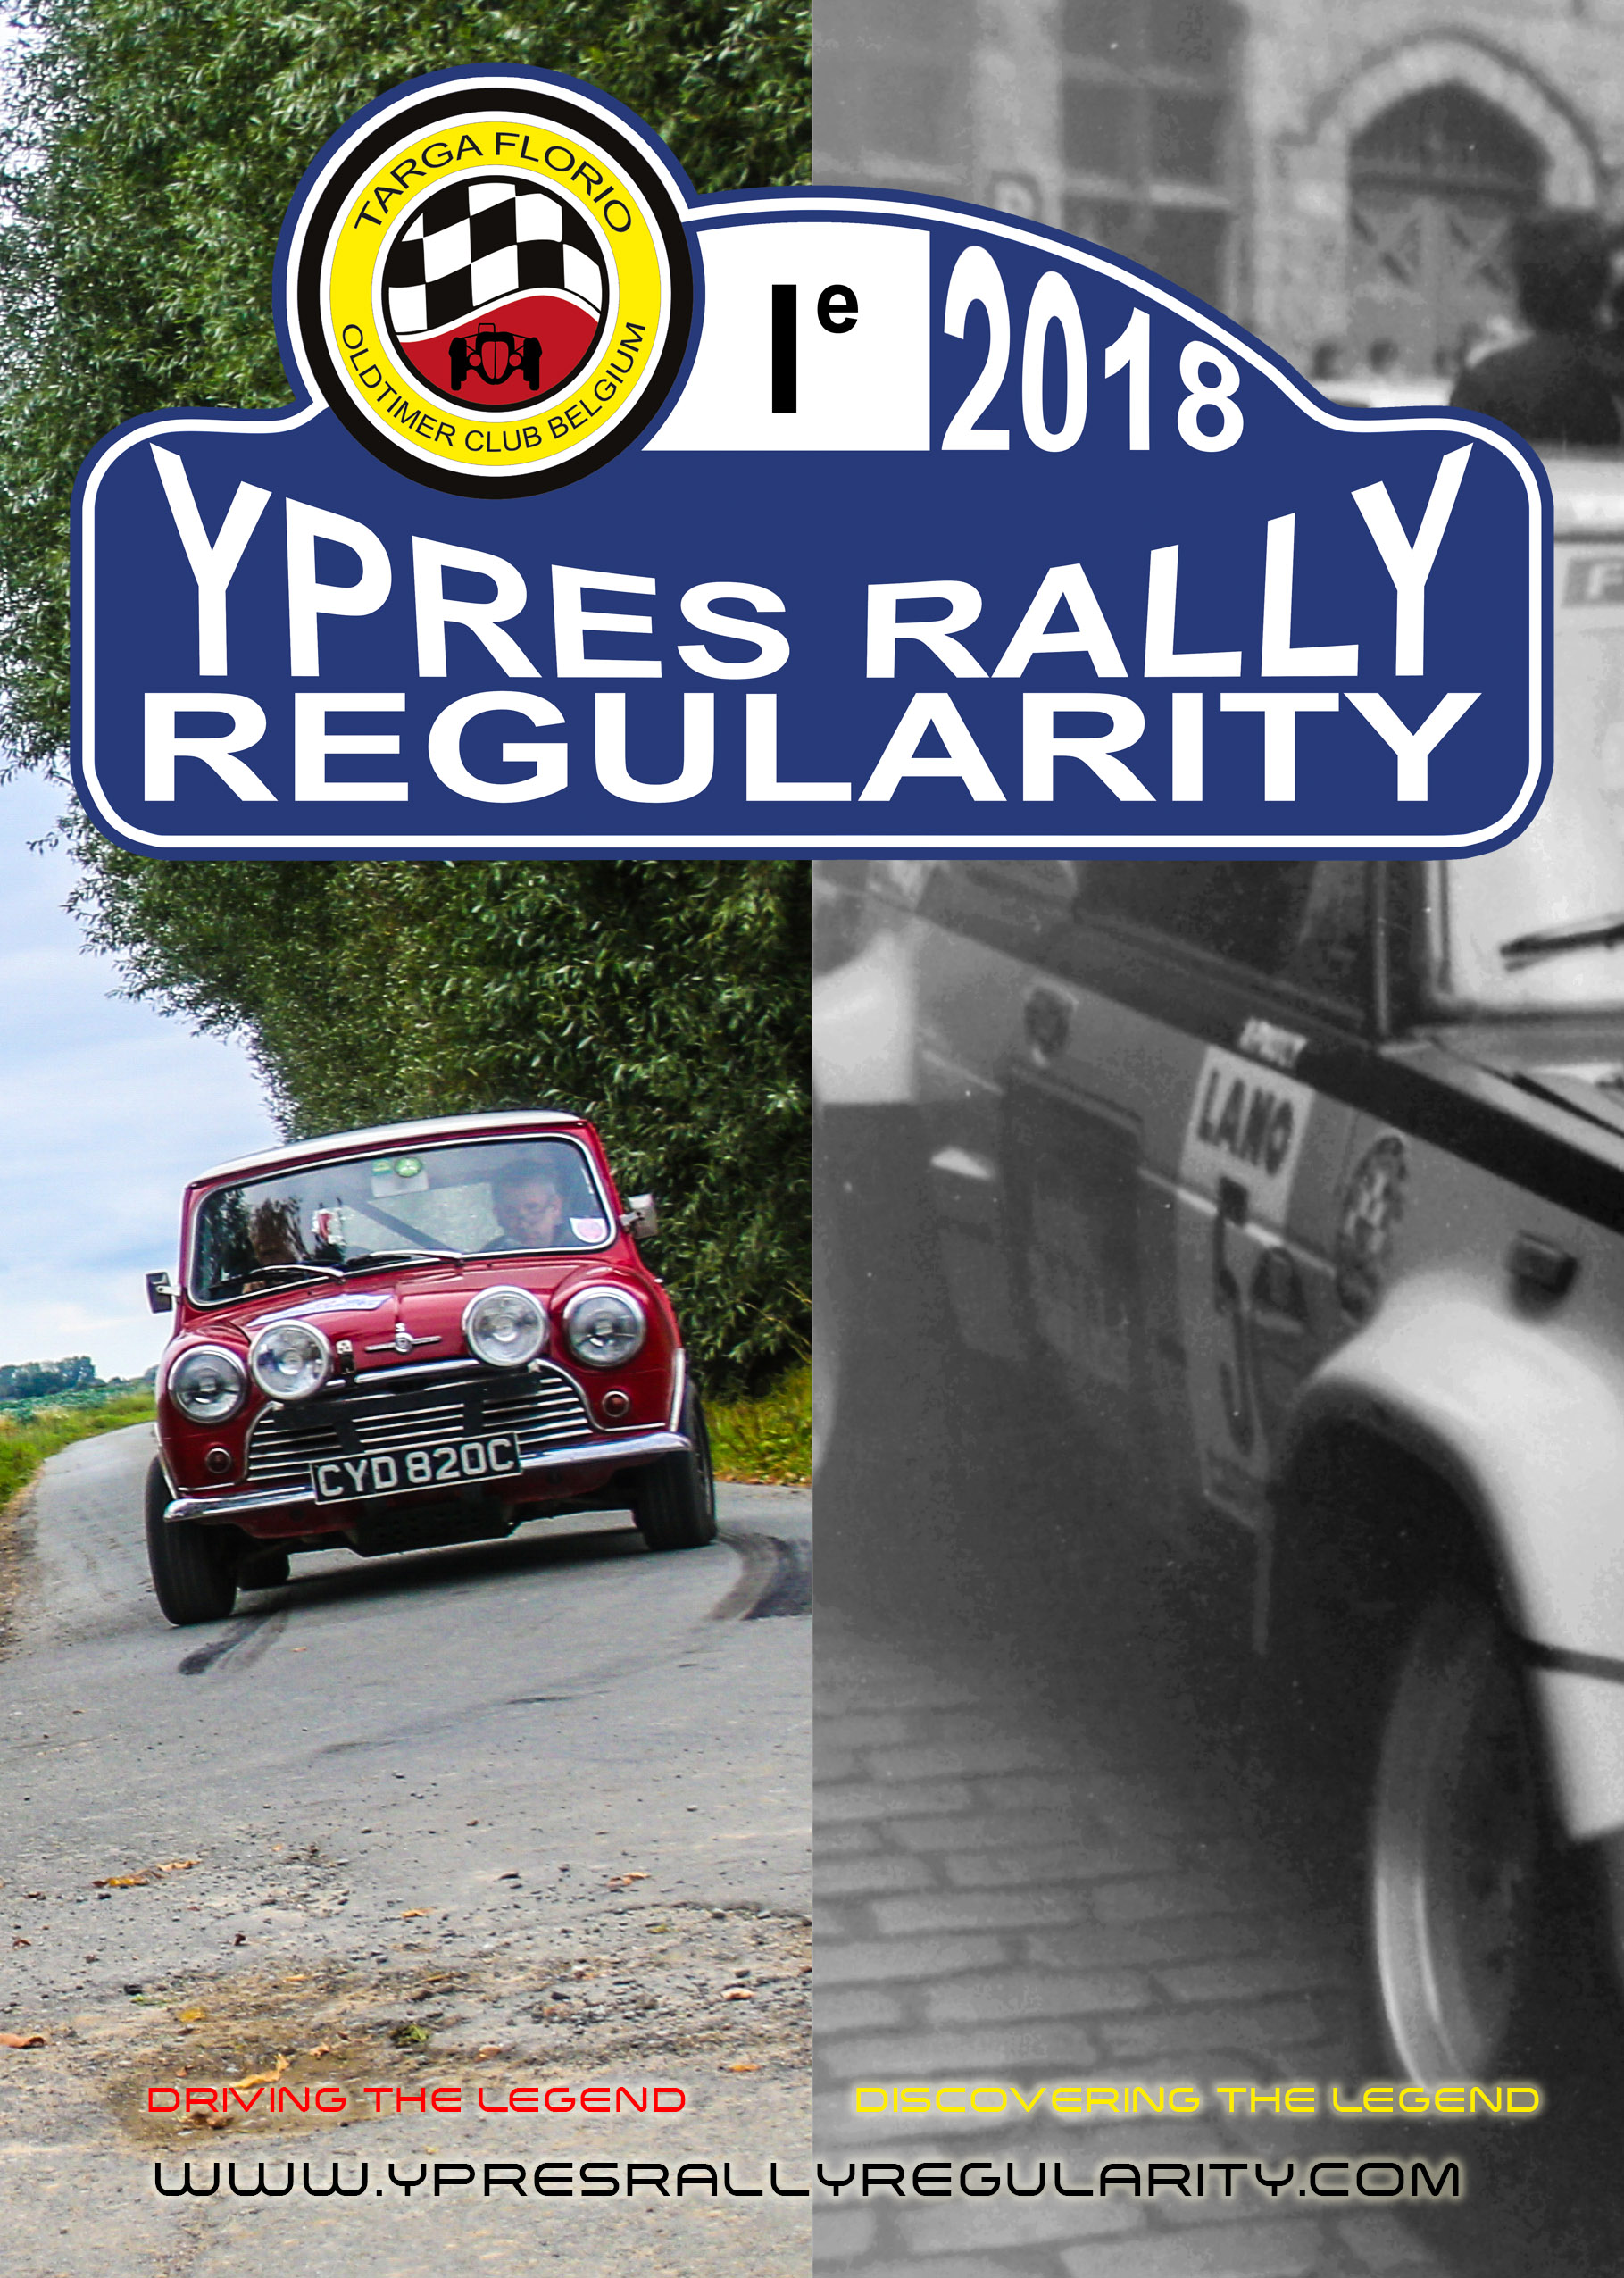 ypres rally regularity 2018 een nieuw superstage evenement in 2018 autosportnieuws. Black Bedroom Furniture Sets. Home Design Ideas